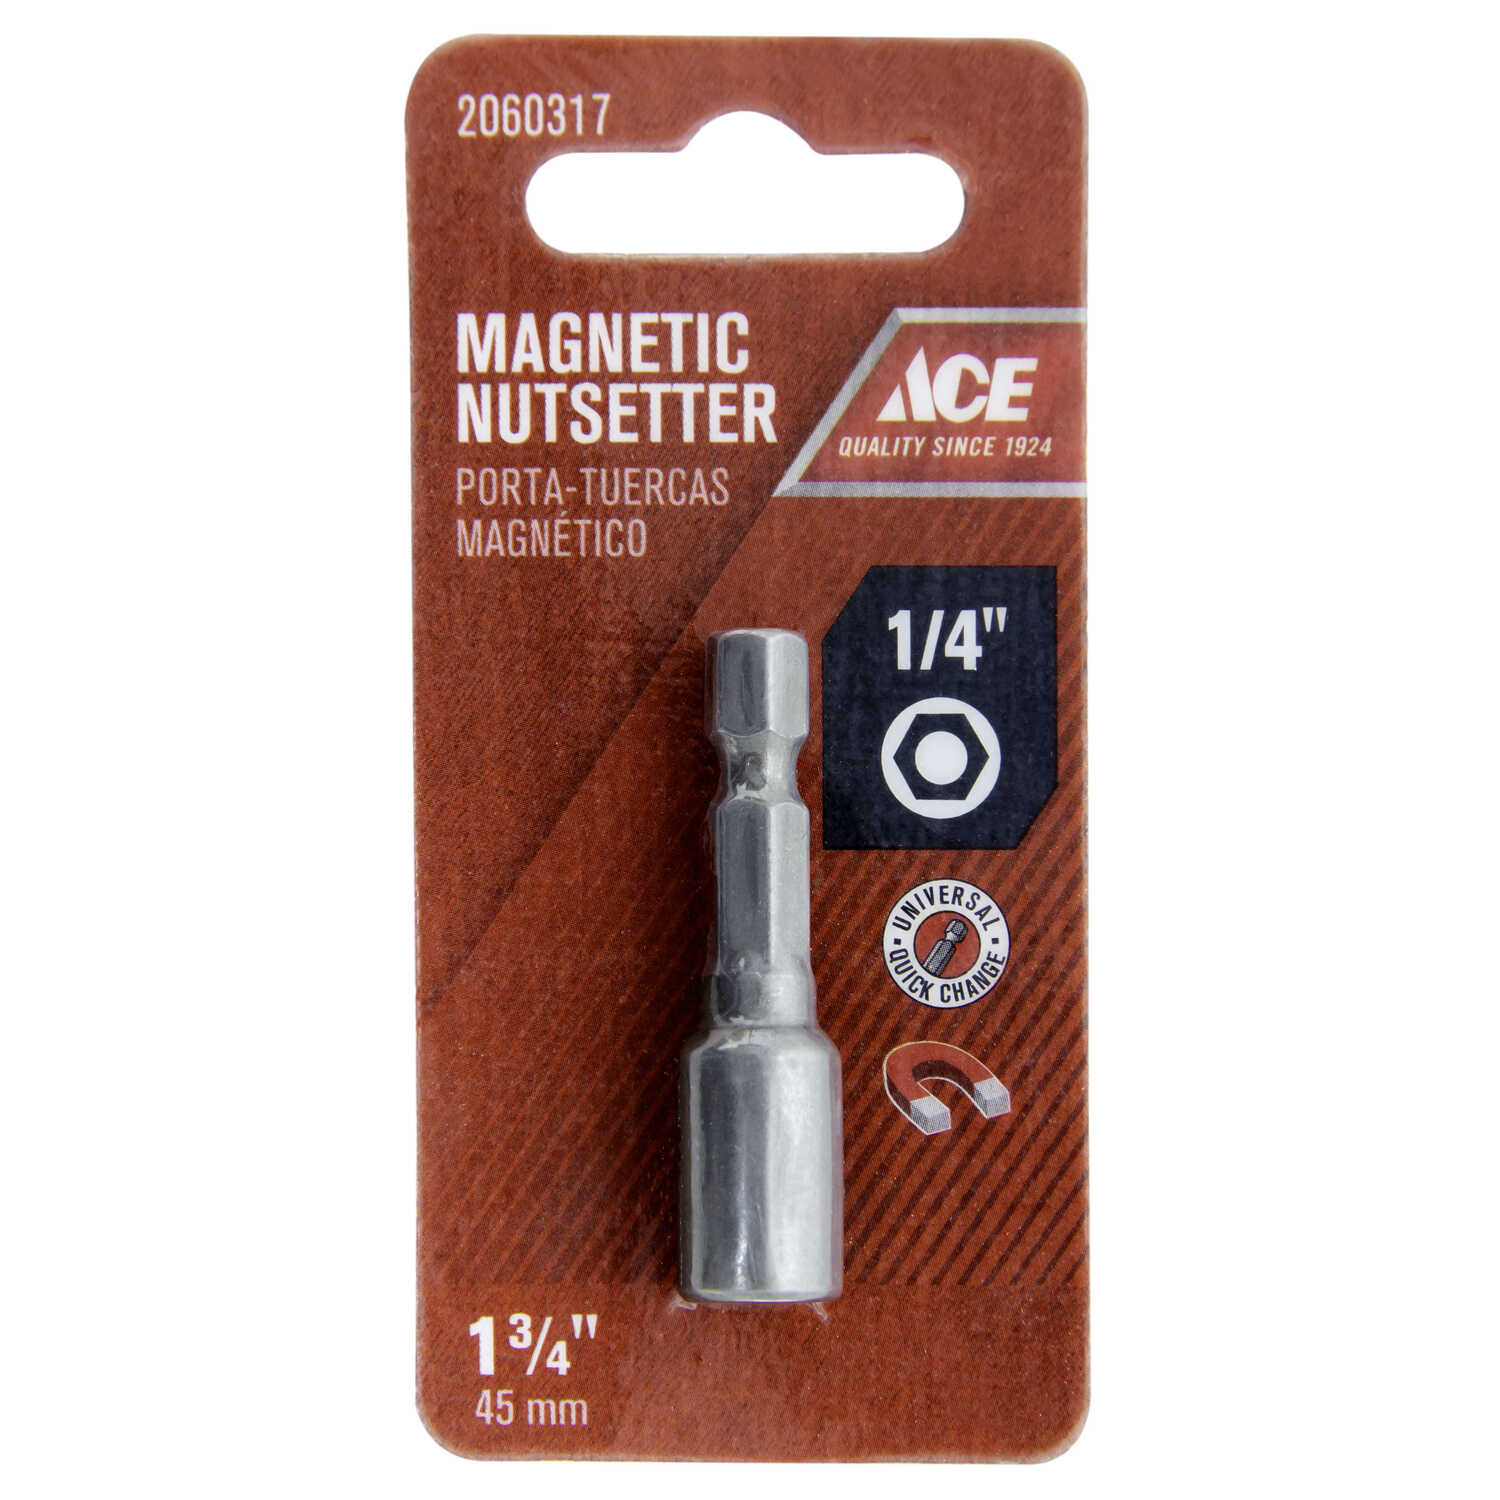 Ace  1/4 in. drive  x 1-3/4 in. L Chrome Vanadium Steel  Magnetic Nut Setter  1/4 in. Quick-Change H